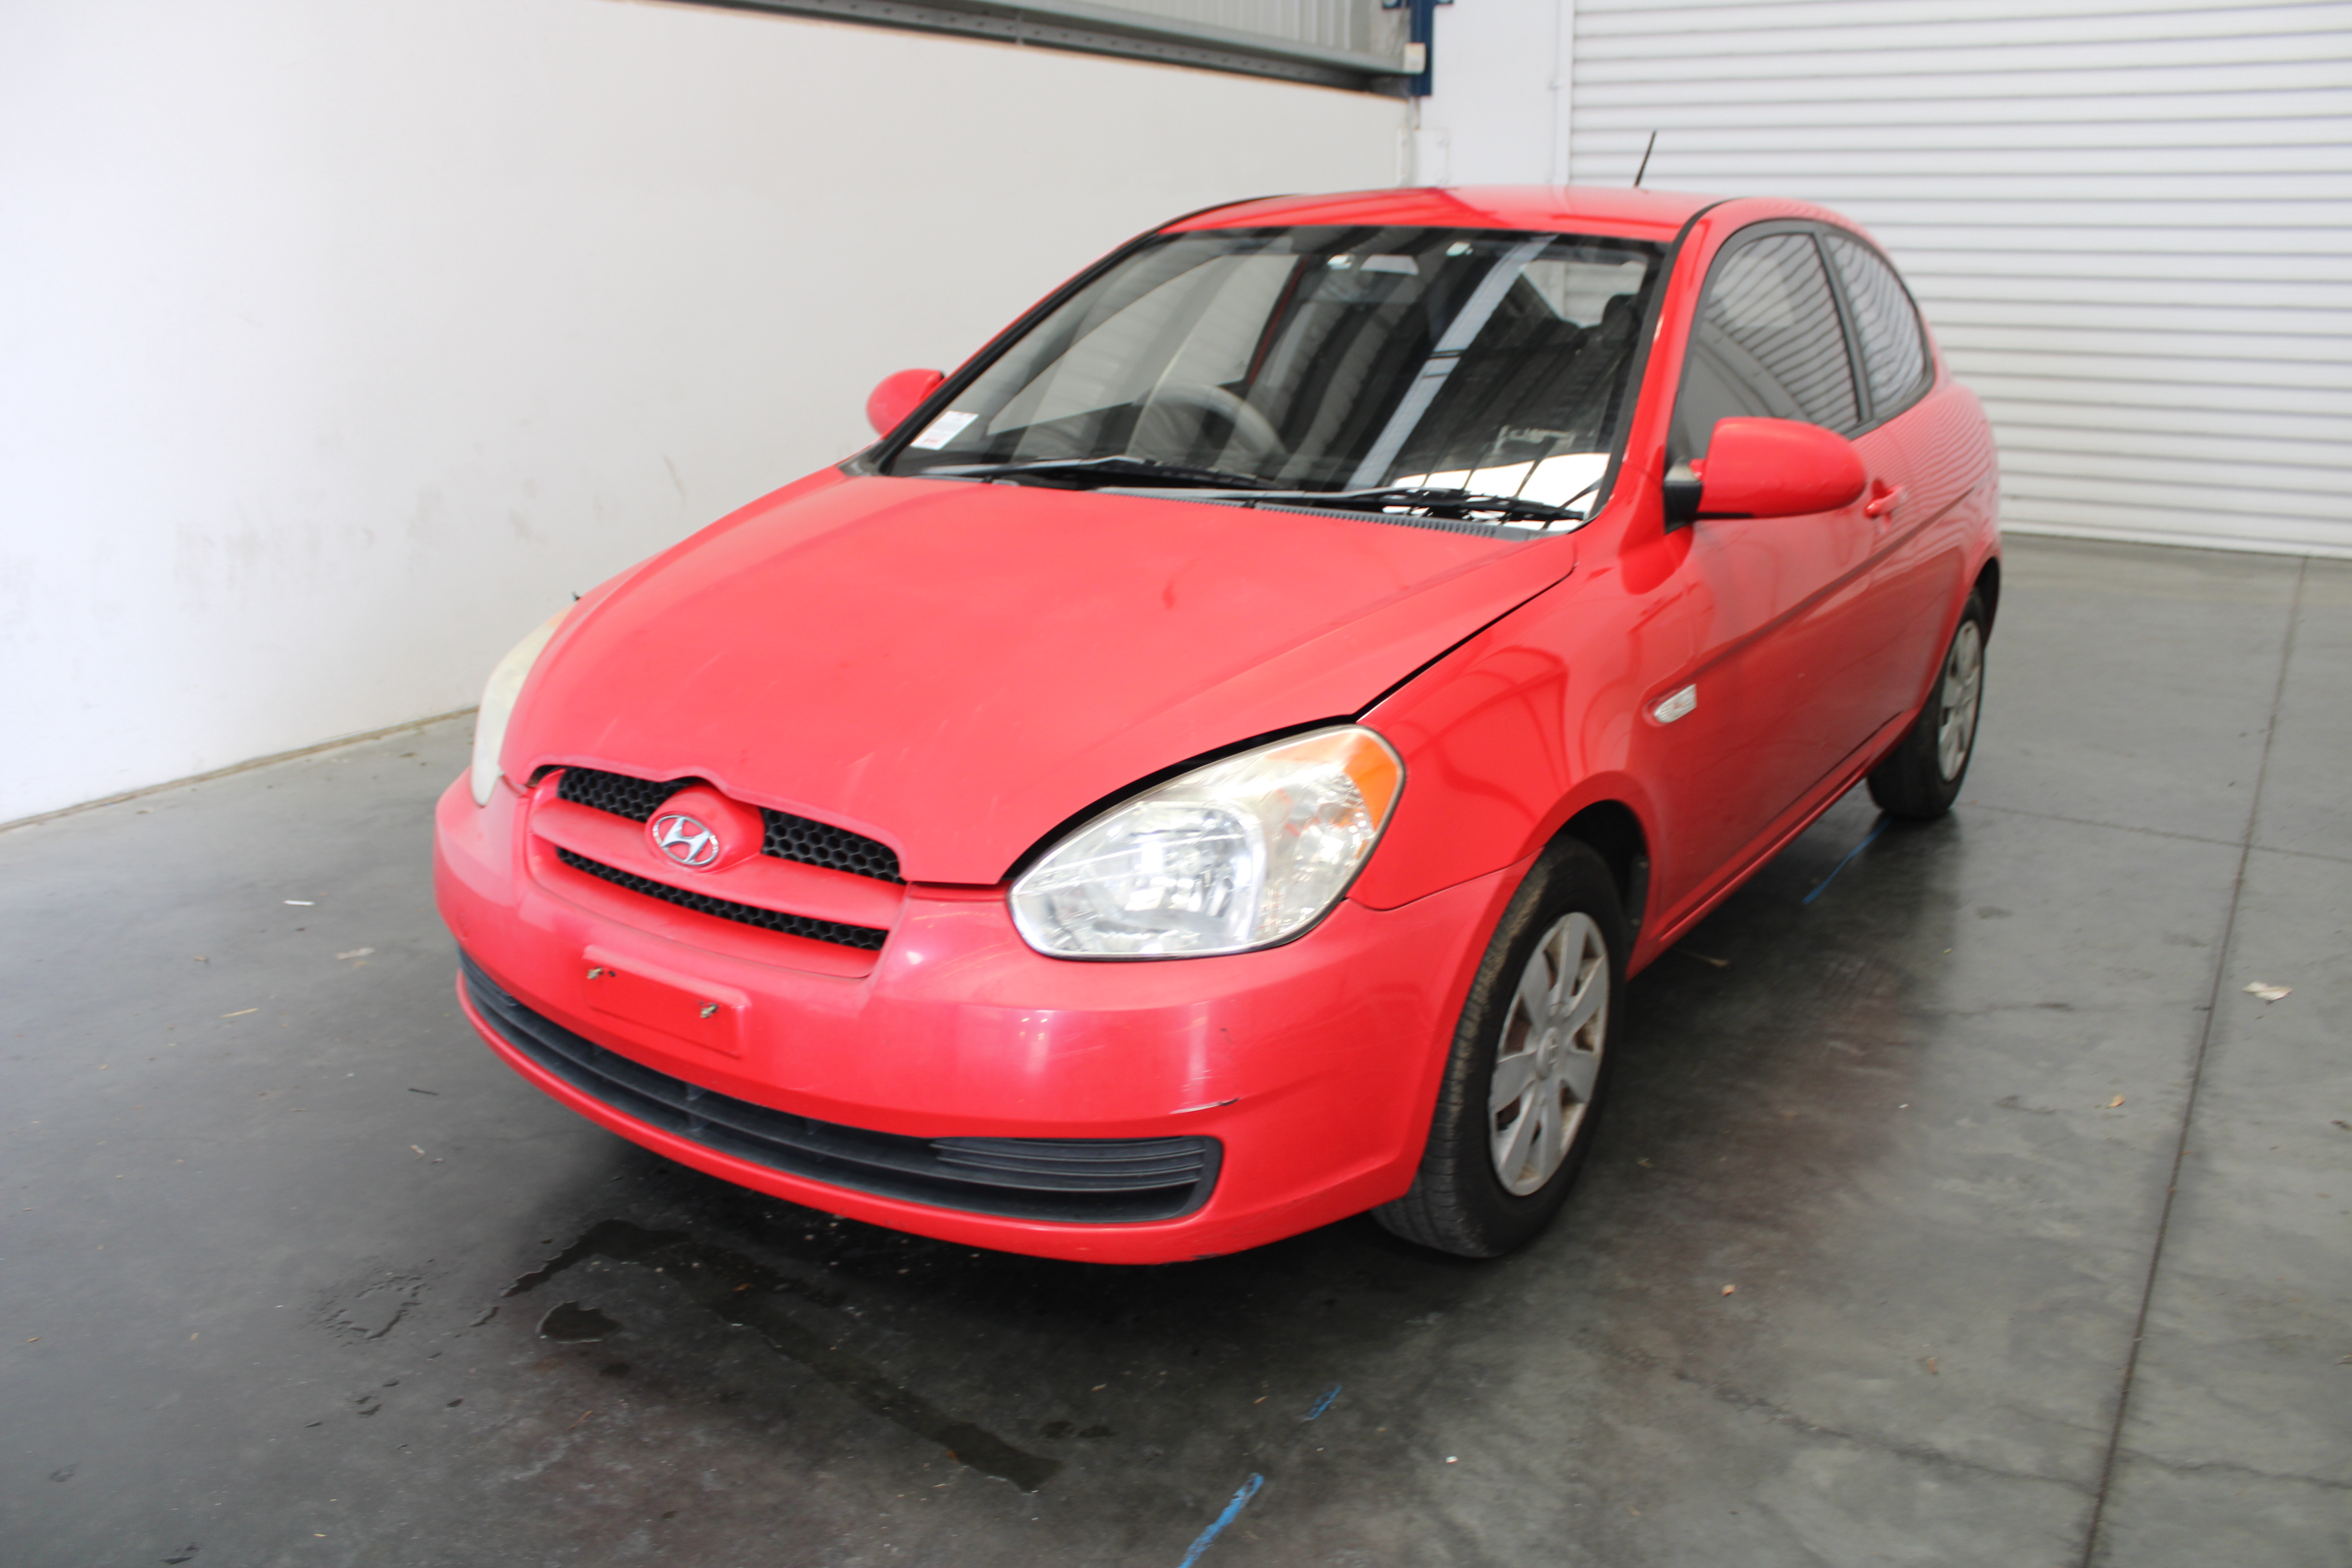 2007 Hyundai Accent S Automatic Hatchback